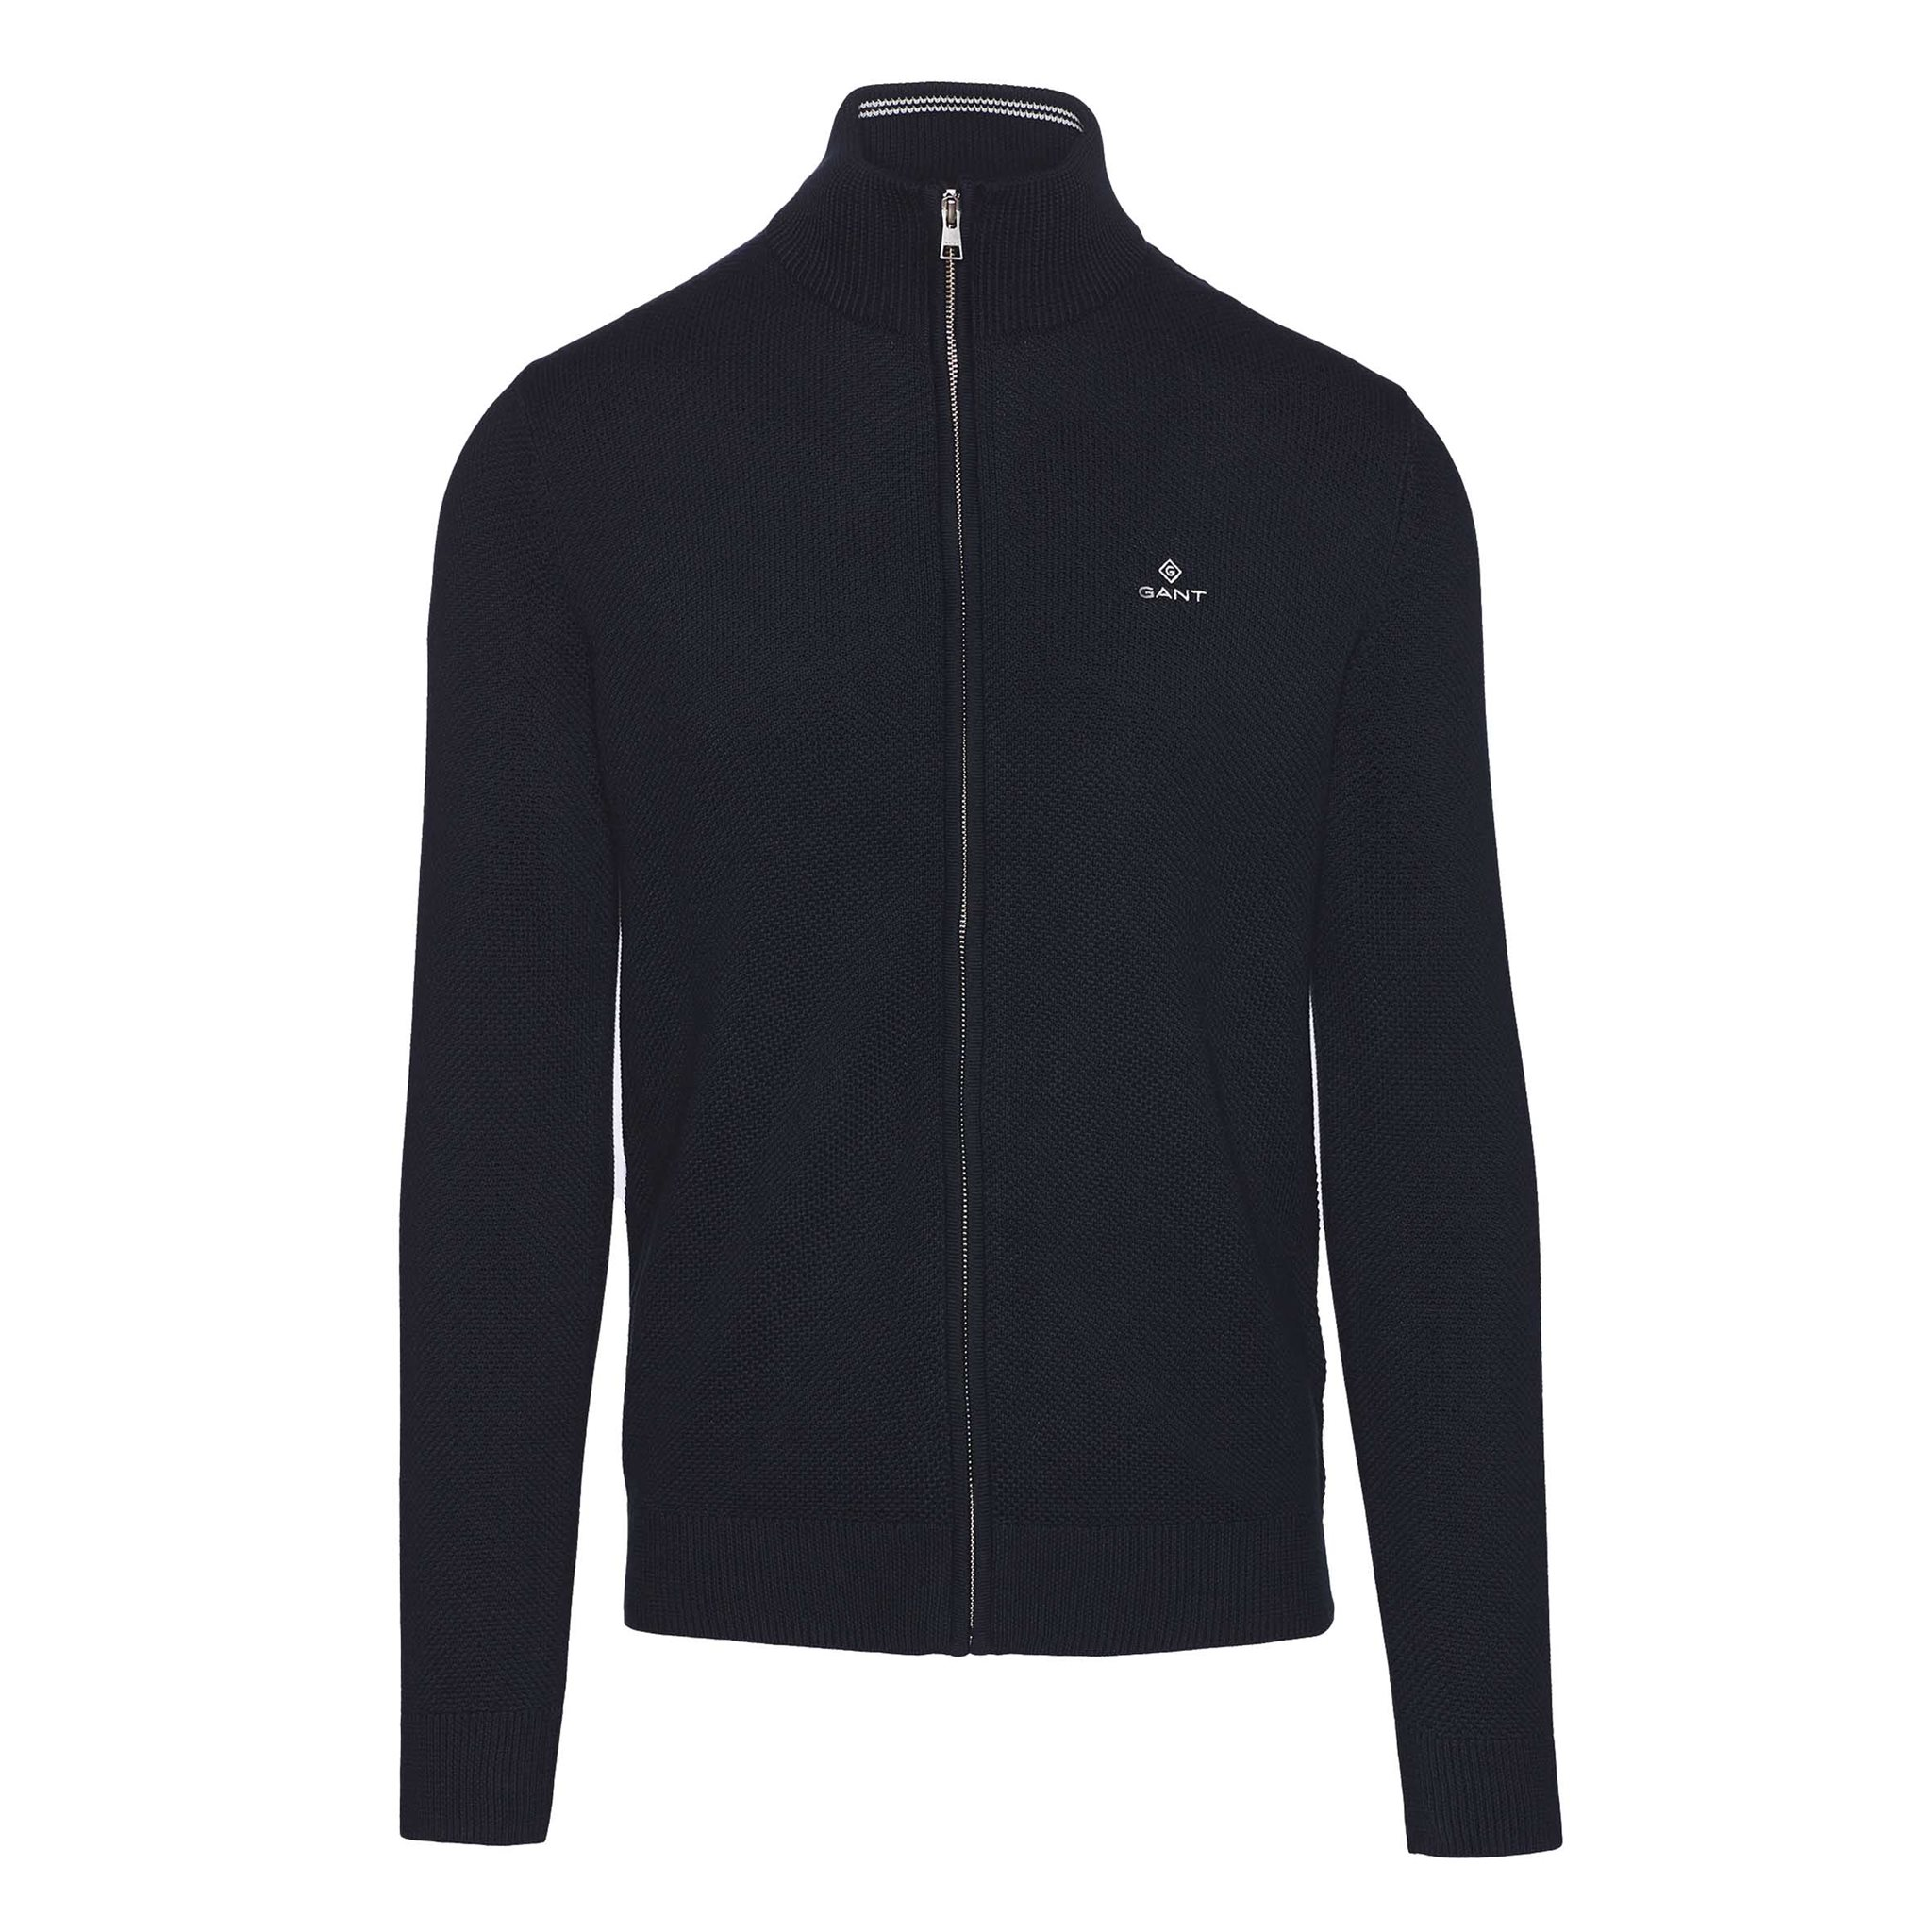 COTTON PIQUE ZIP CARDIGAN GANT MAN